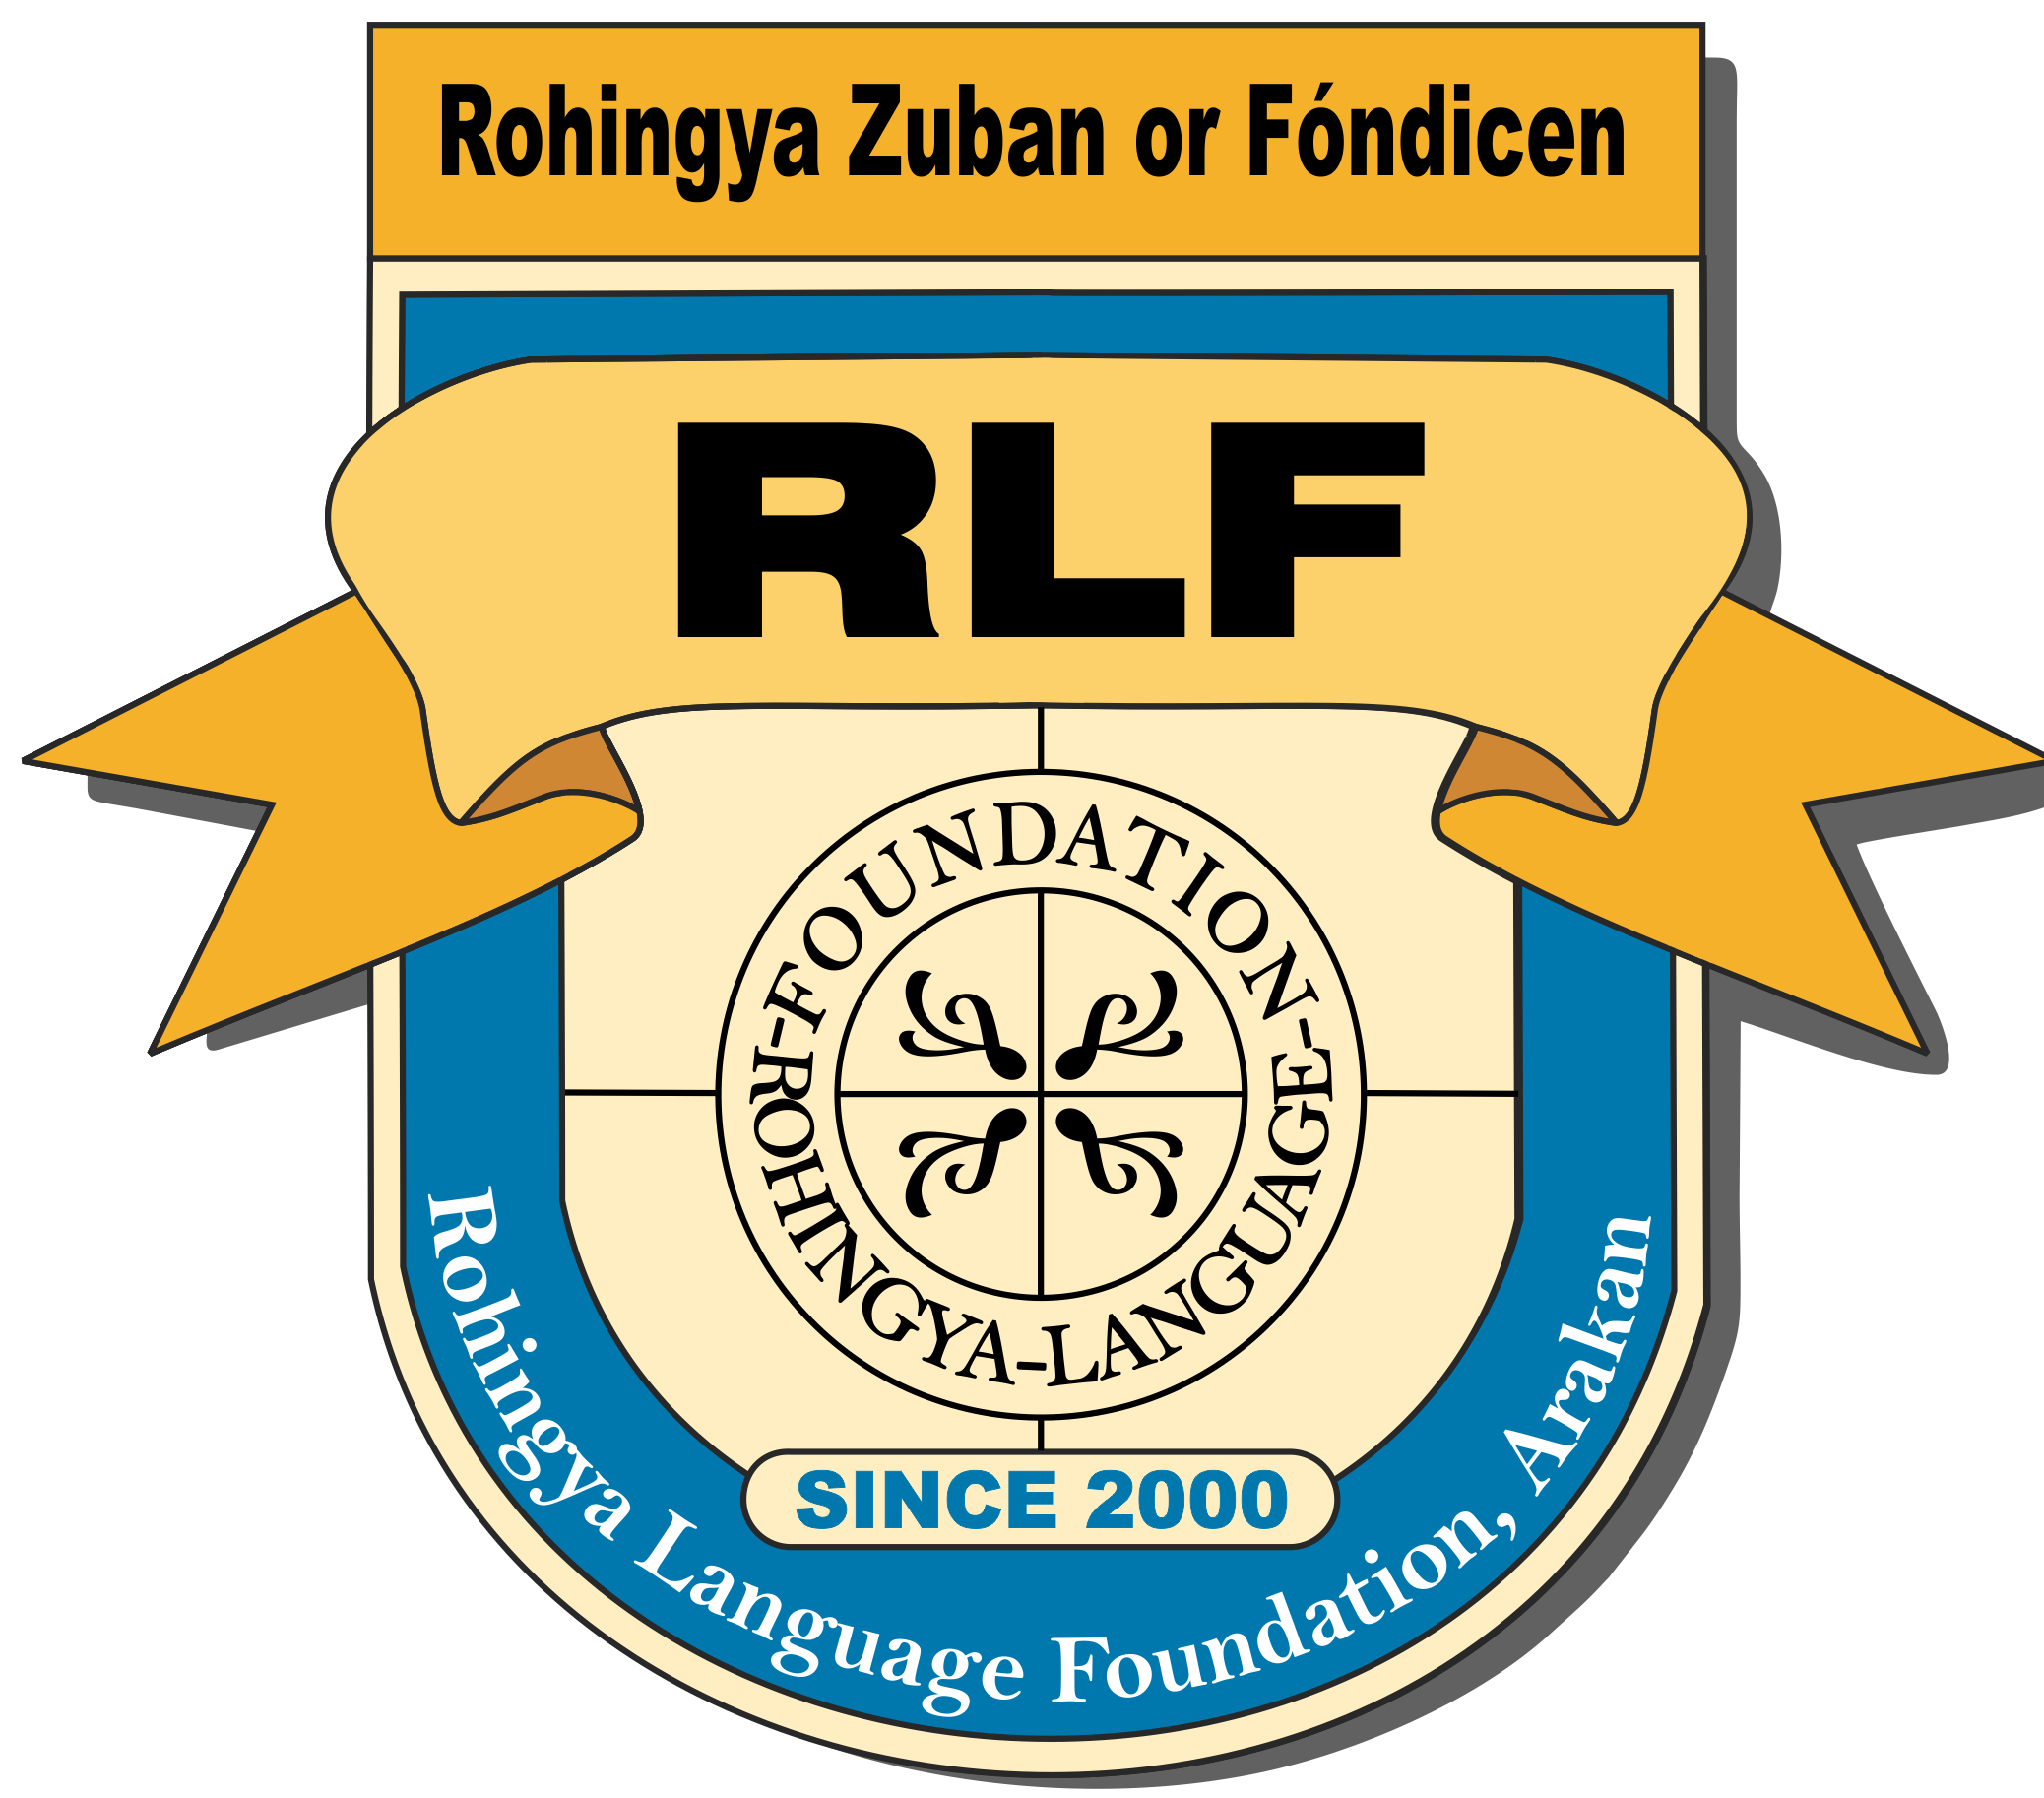 Rohingya Language Foundation